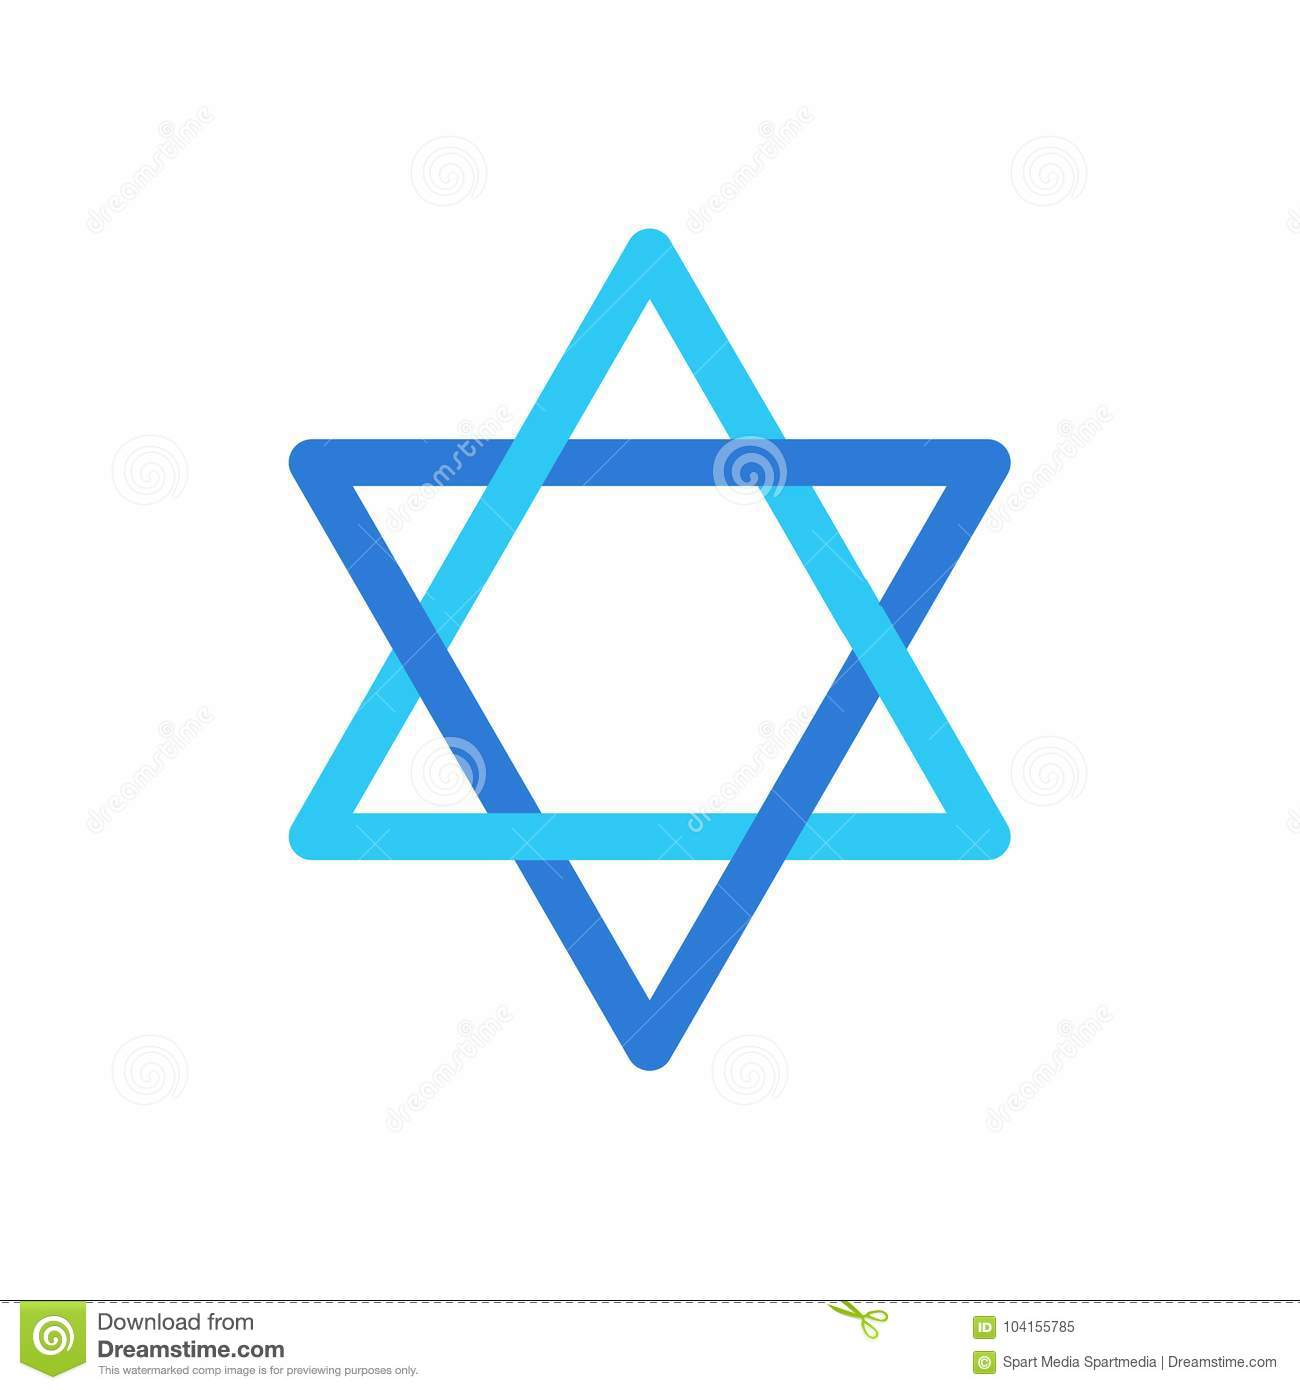 Star of David Israel symbol isolated on white background wallpaper, David`s star Jewish sign flag logo concept, star sticker icon vector illustration Israel ...